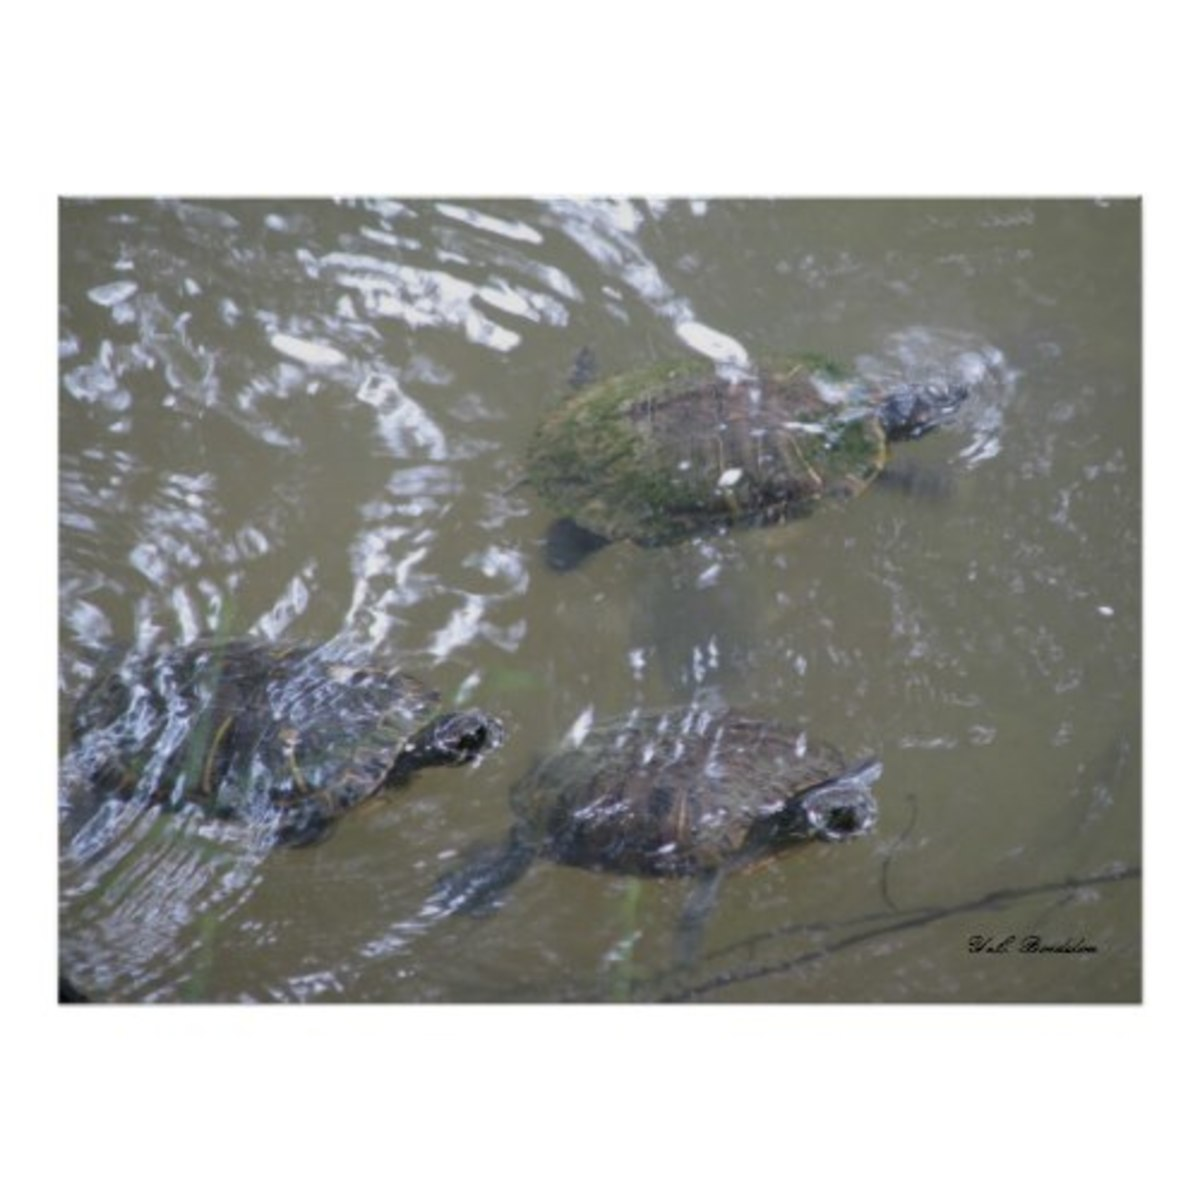 These turtles were photographed in the Tchefuncte River.